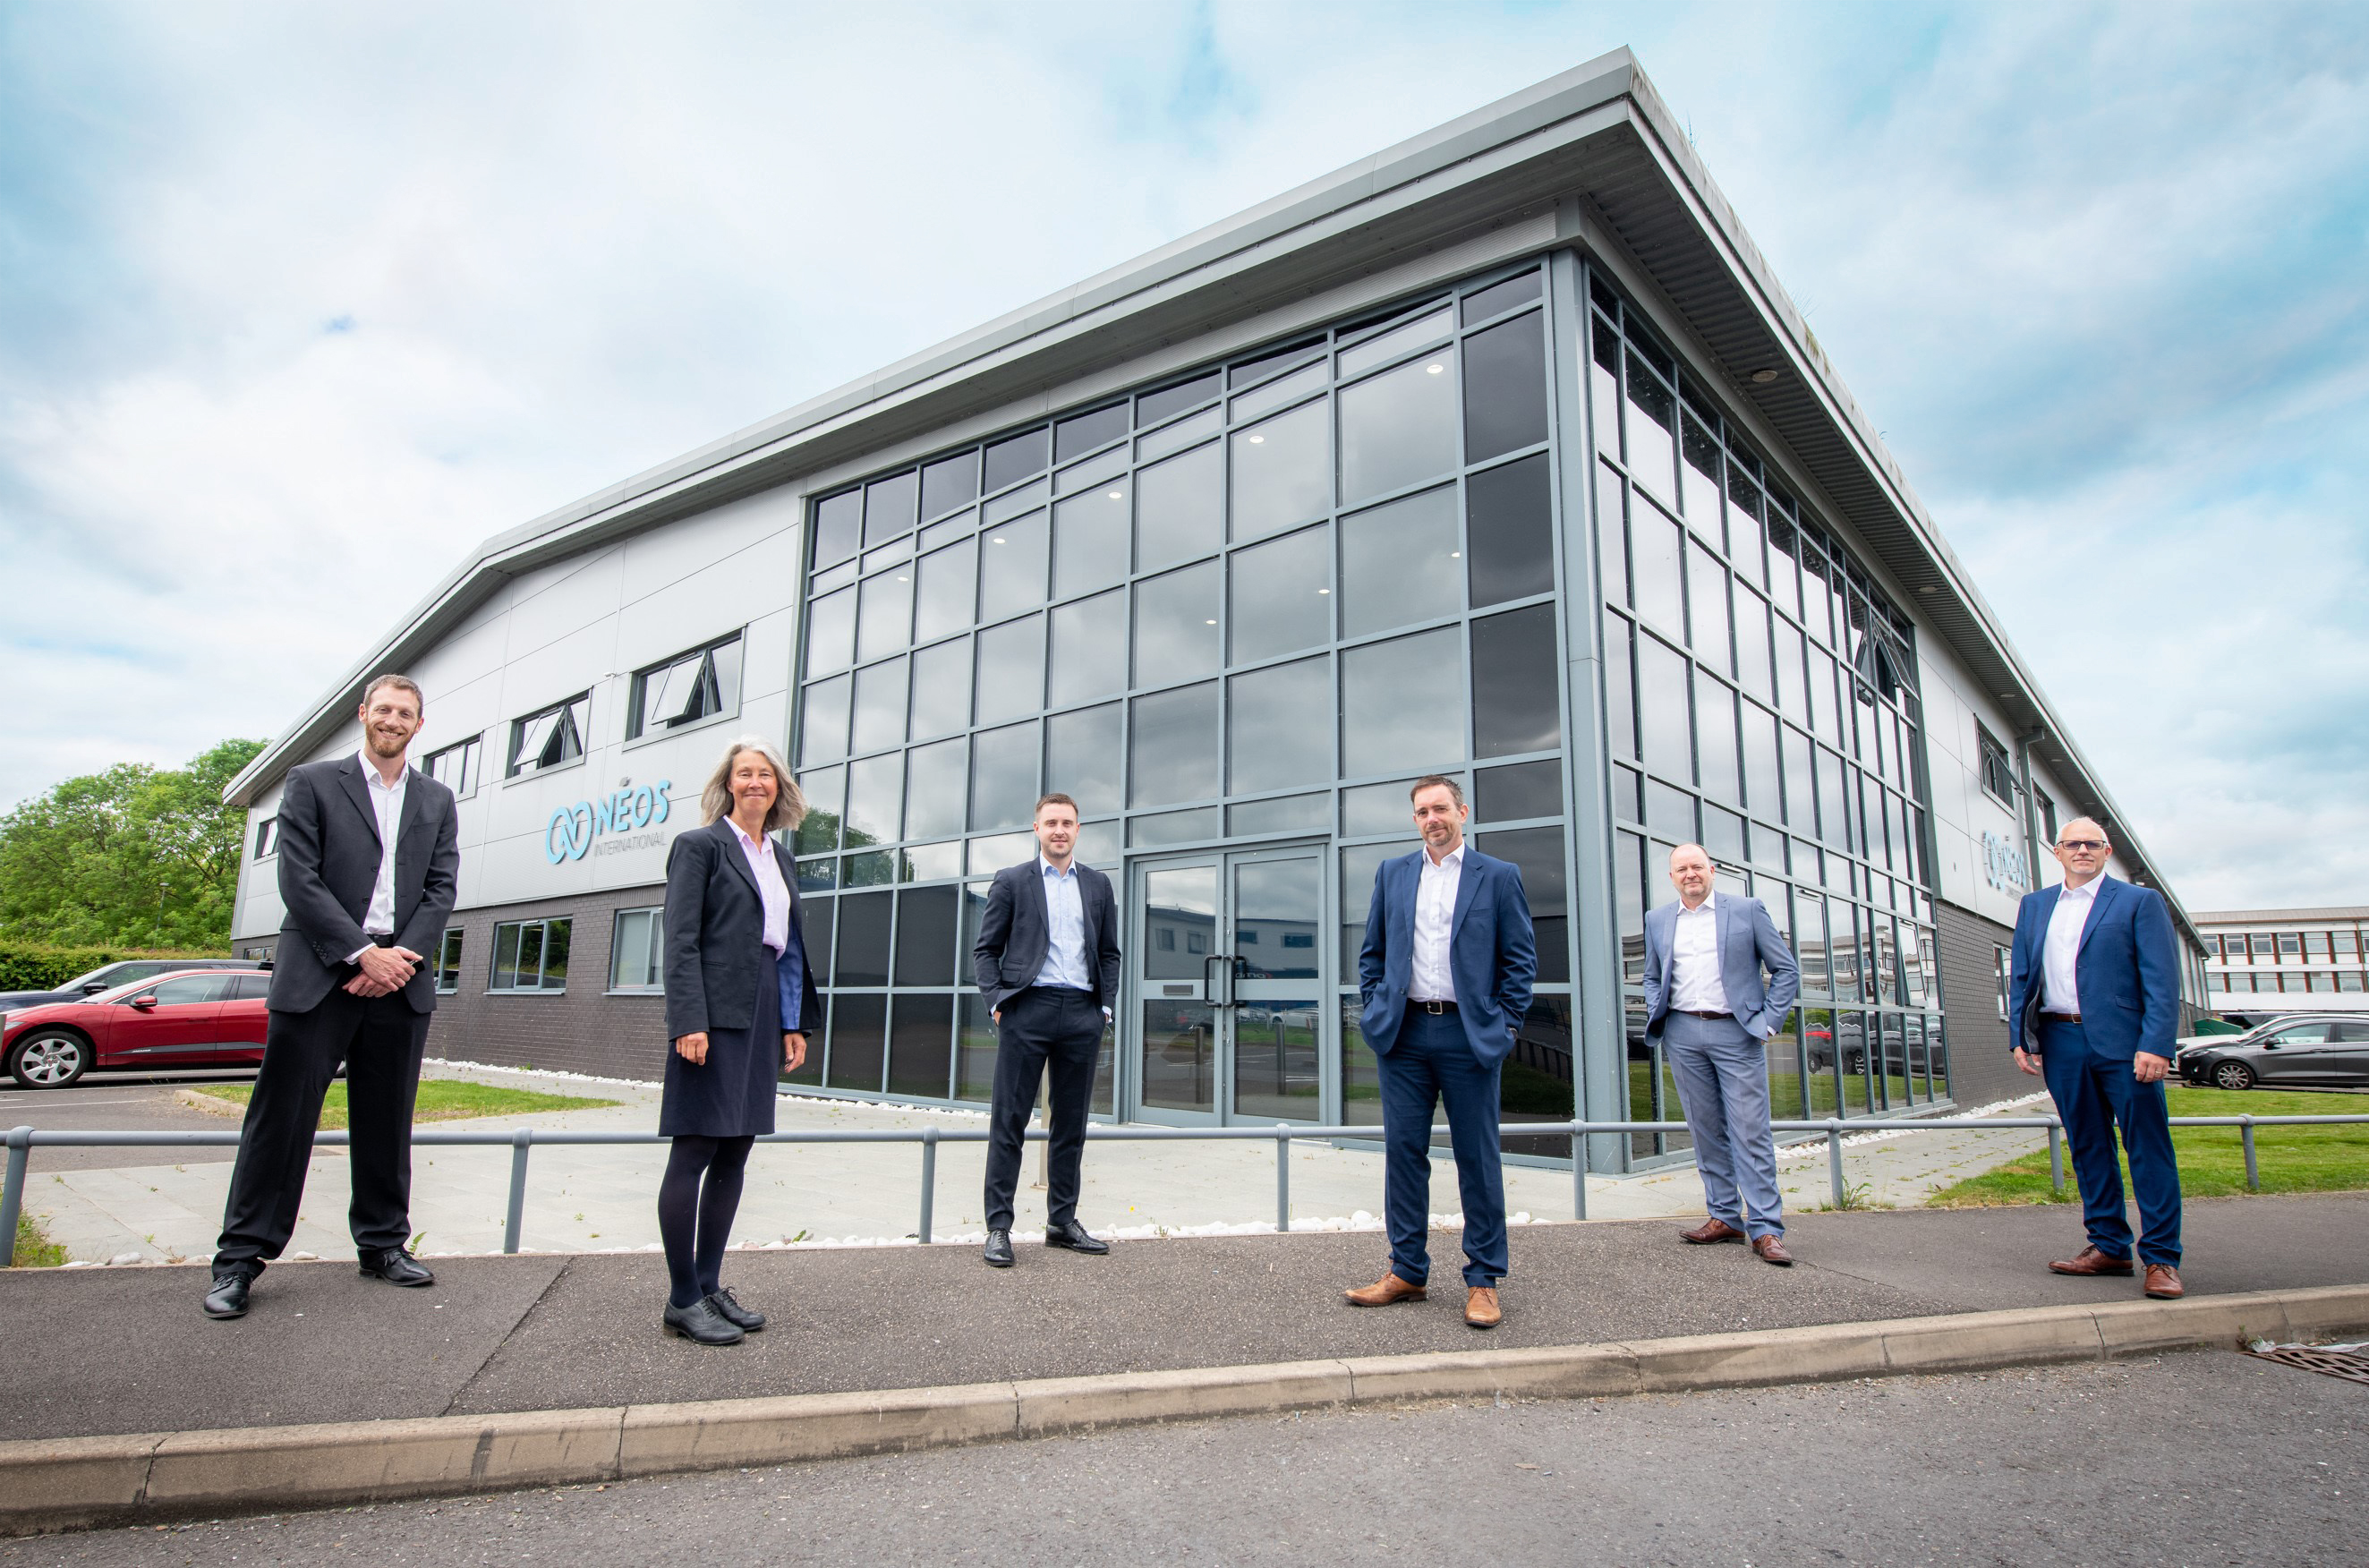 Nèos International to open group headquarters in Derby, creating up to 150 jobs